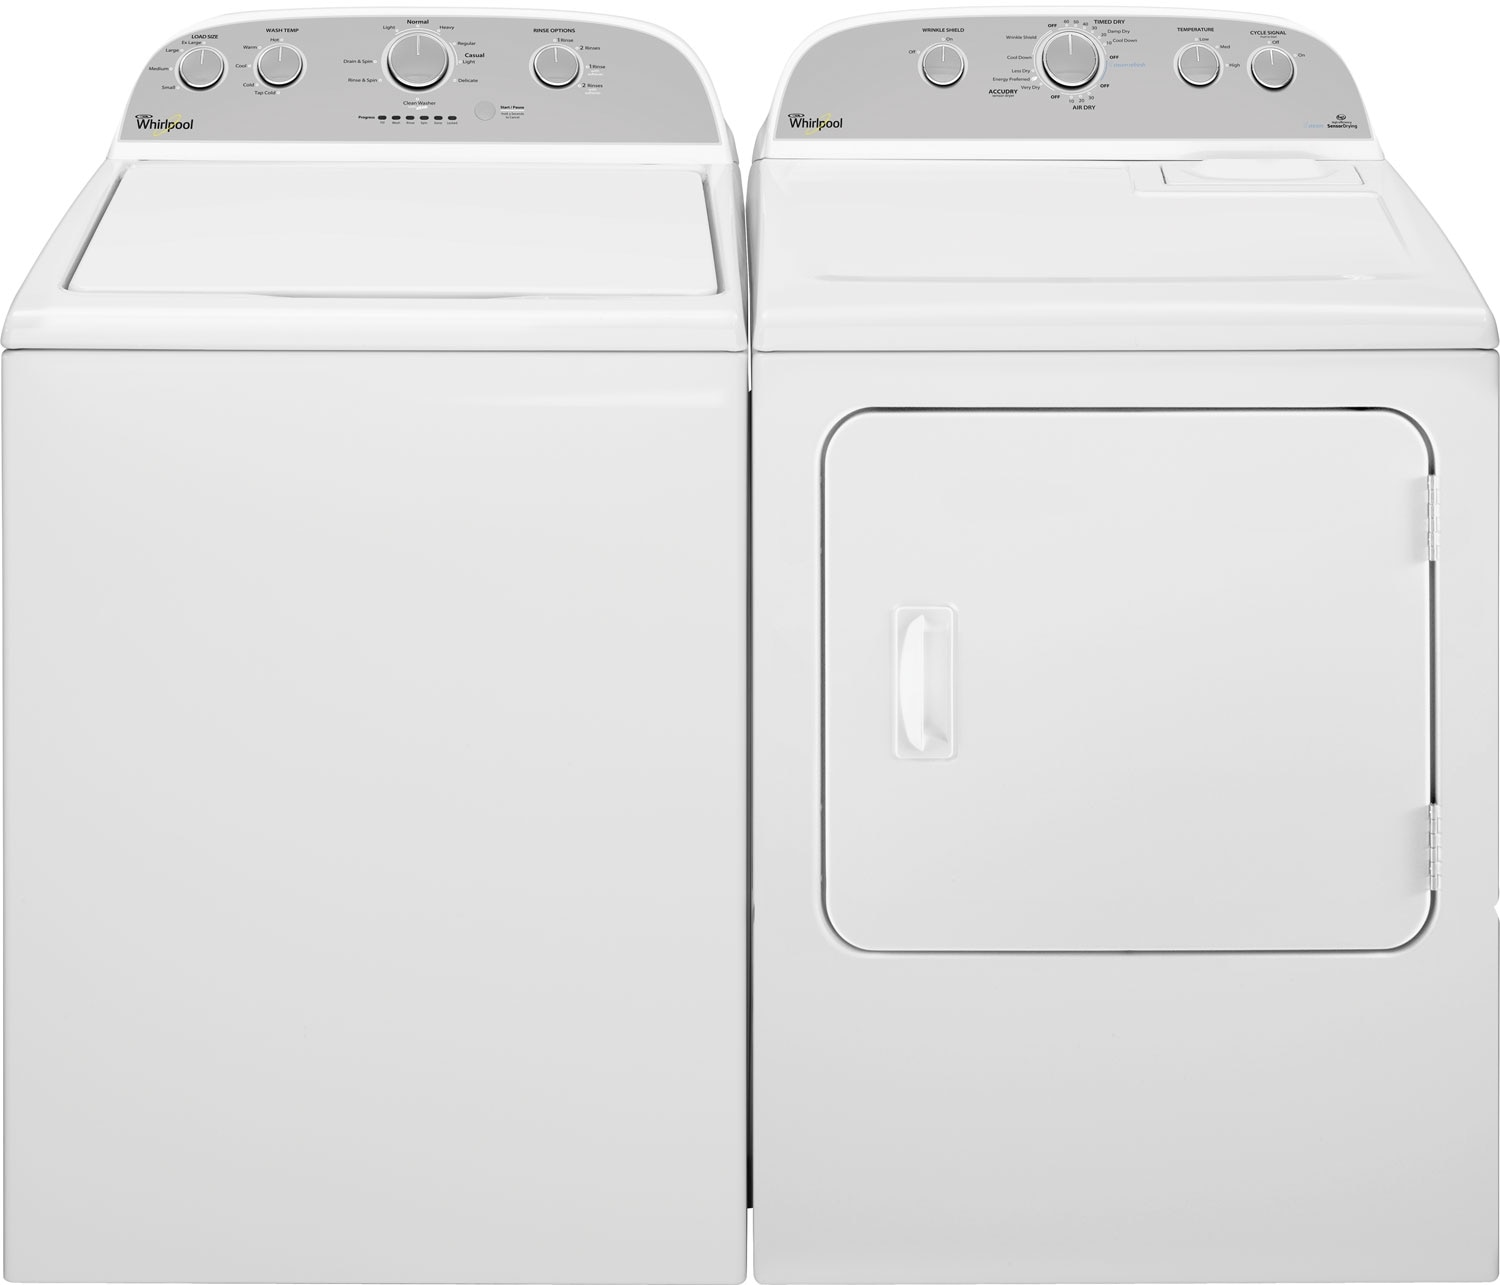 Whirlpool 174 Cabrio 174 5 0 Cu Ft Top Load Washer And 7 0 Cu